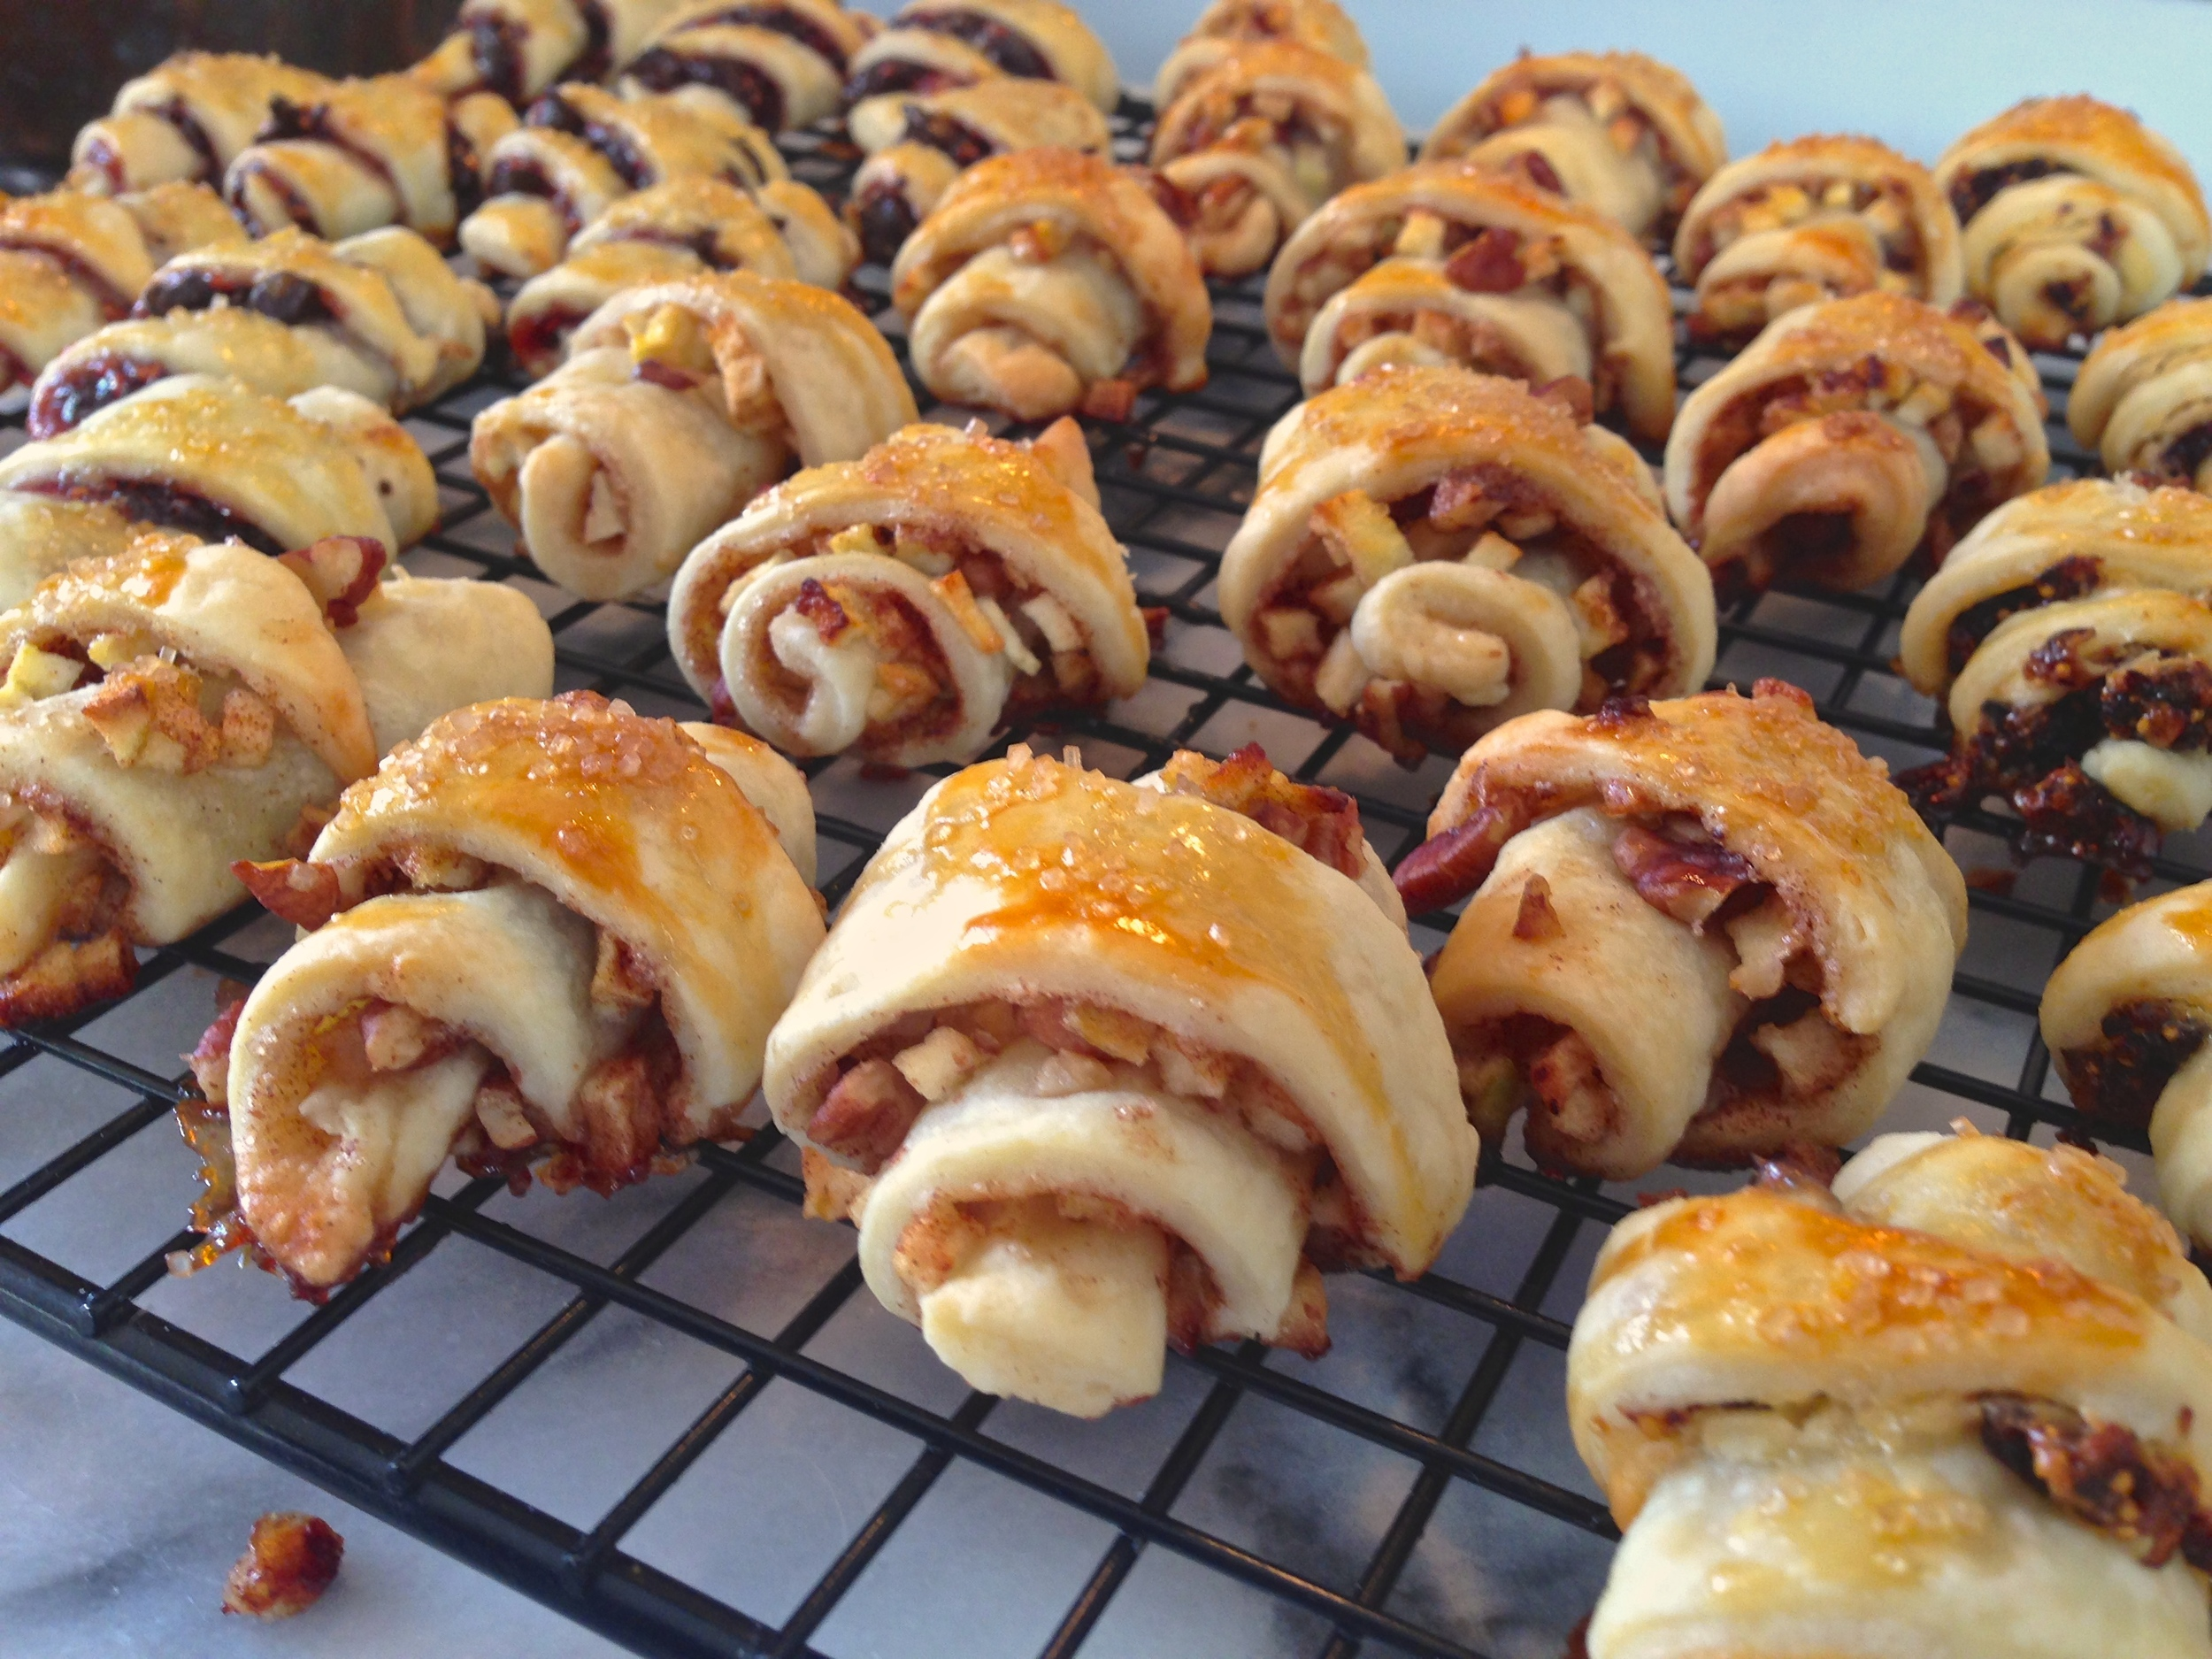 Homemade Rugelach 3 Ways: Chocolate Raspberry, Cinnamon Apple with Toasted Pecans, & Honeyed Fig with Goat Cheese   Kneading Home